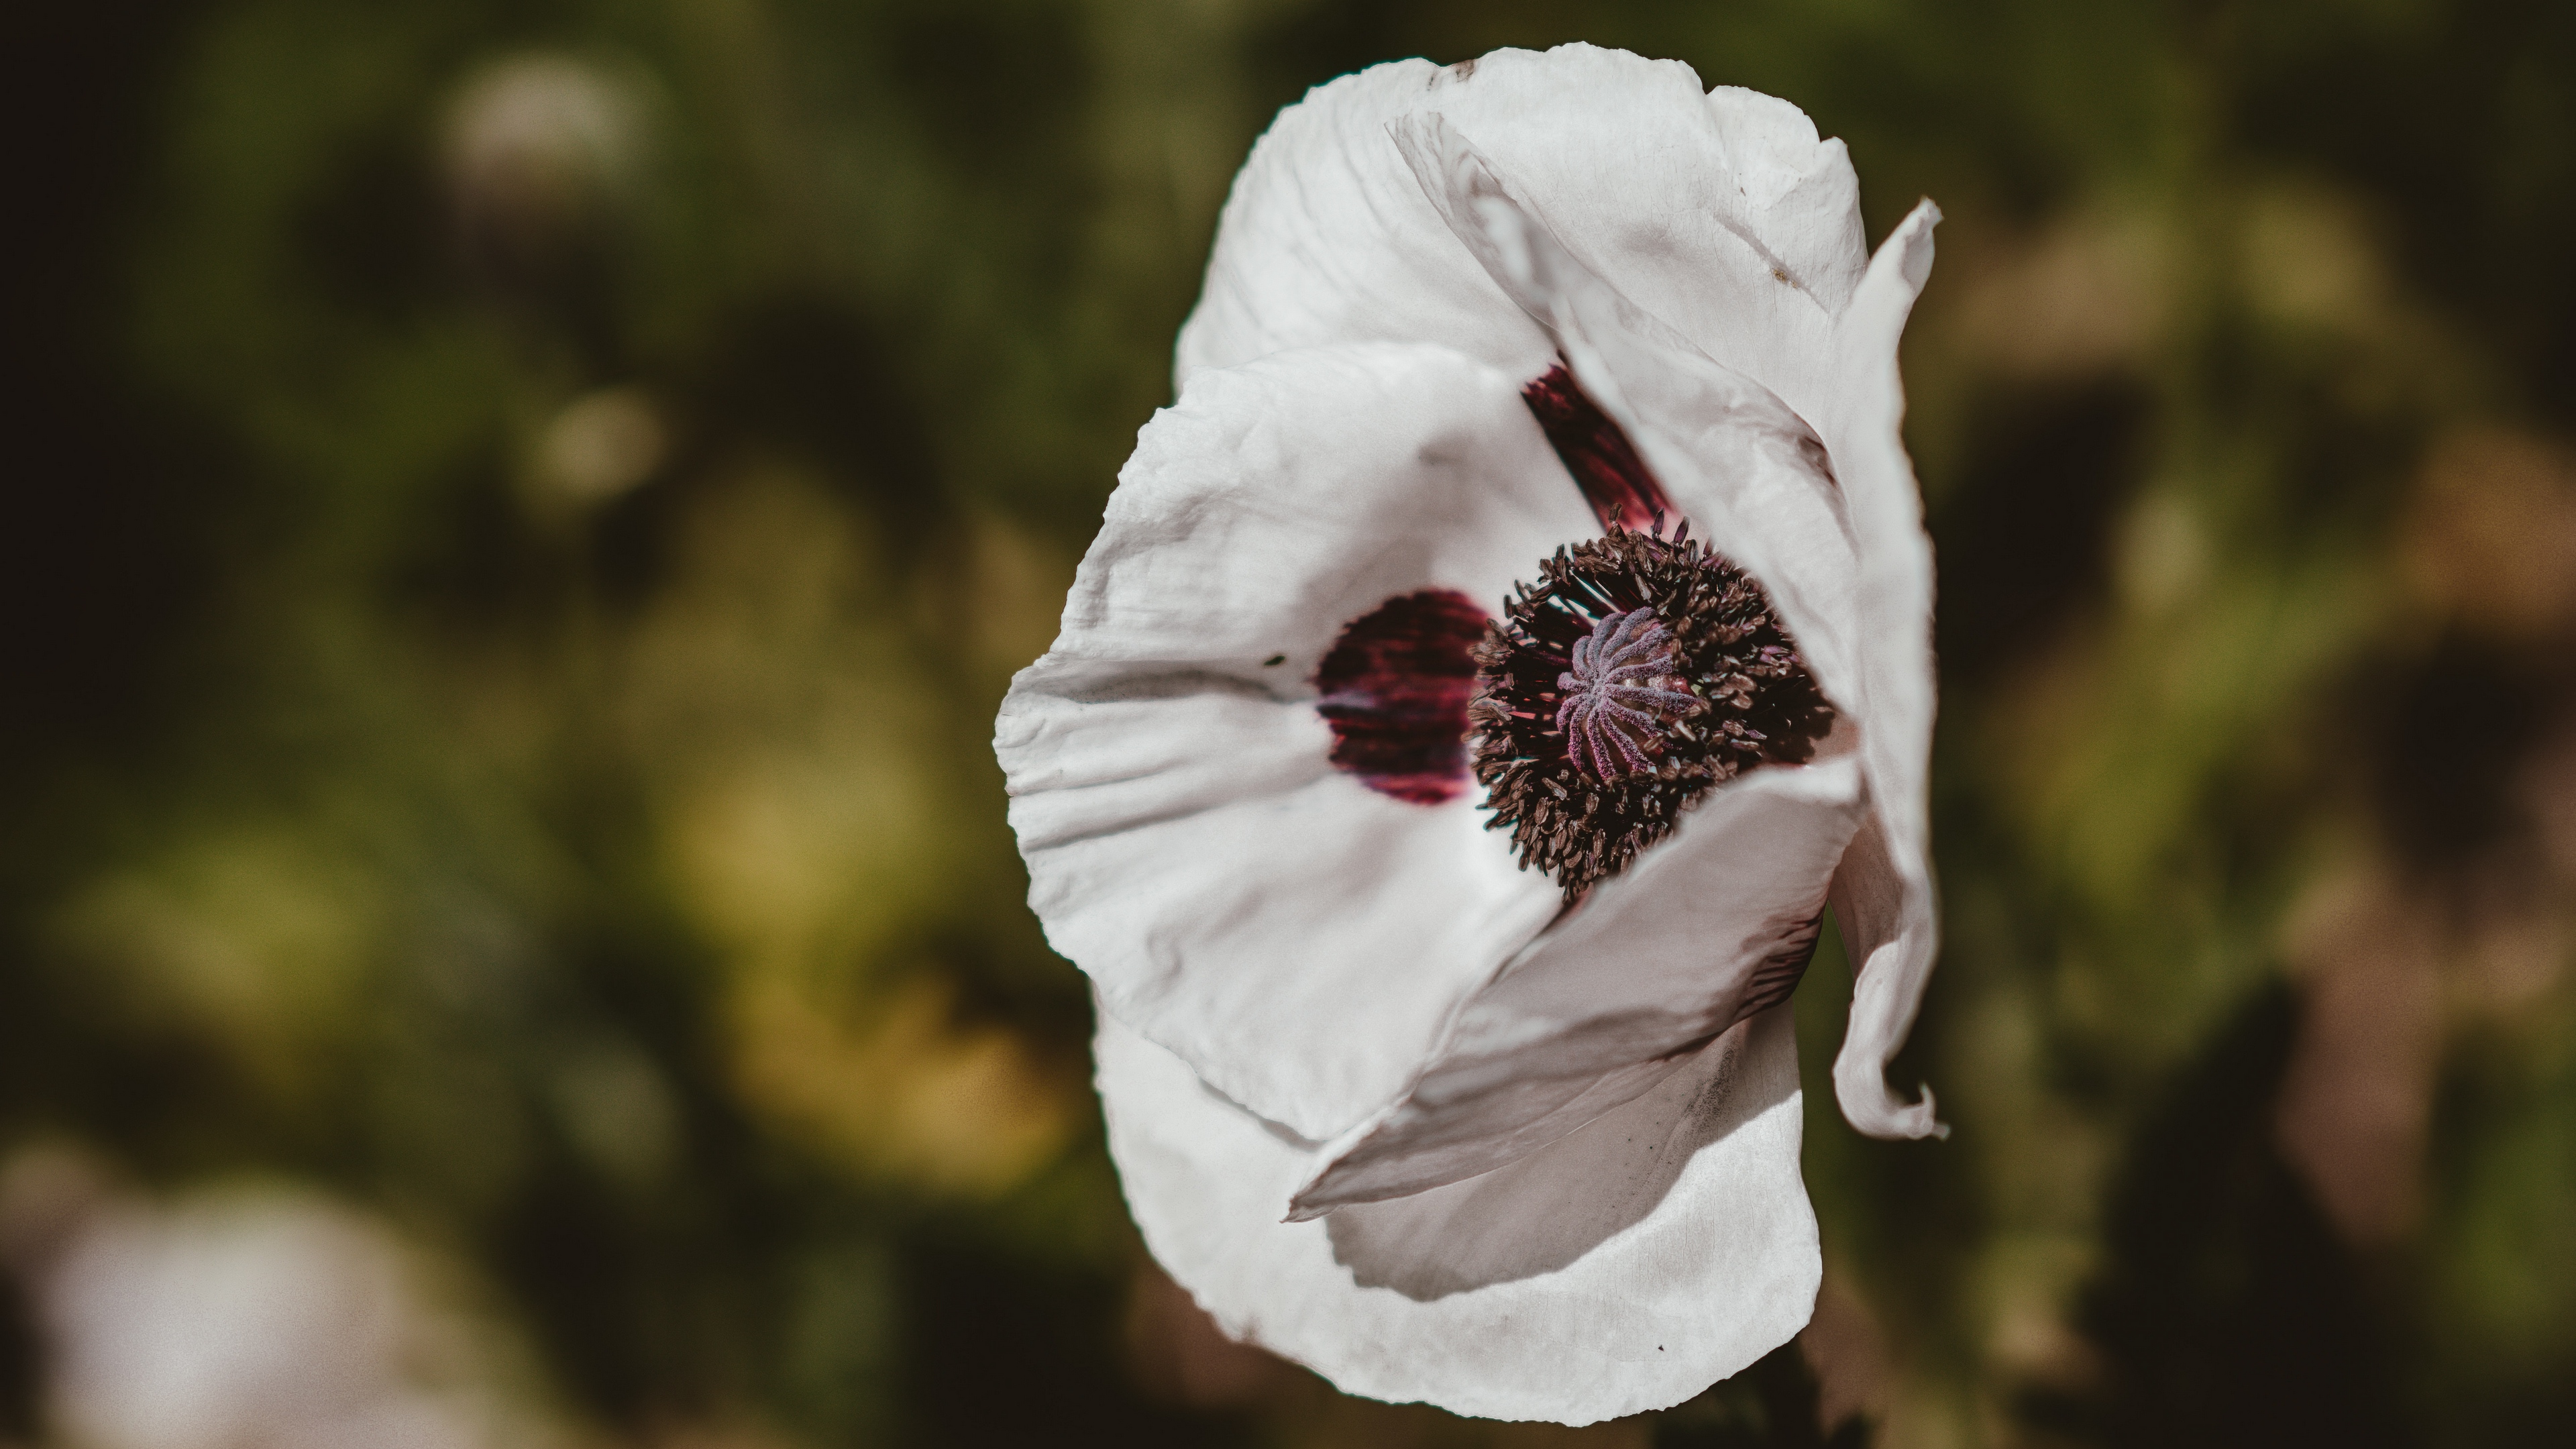 poppy flower white blur 4k 1540064110 - poppy, flower, white, blur 4k - white, Poppy, flower